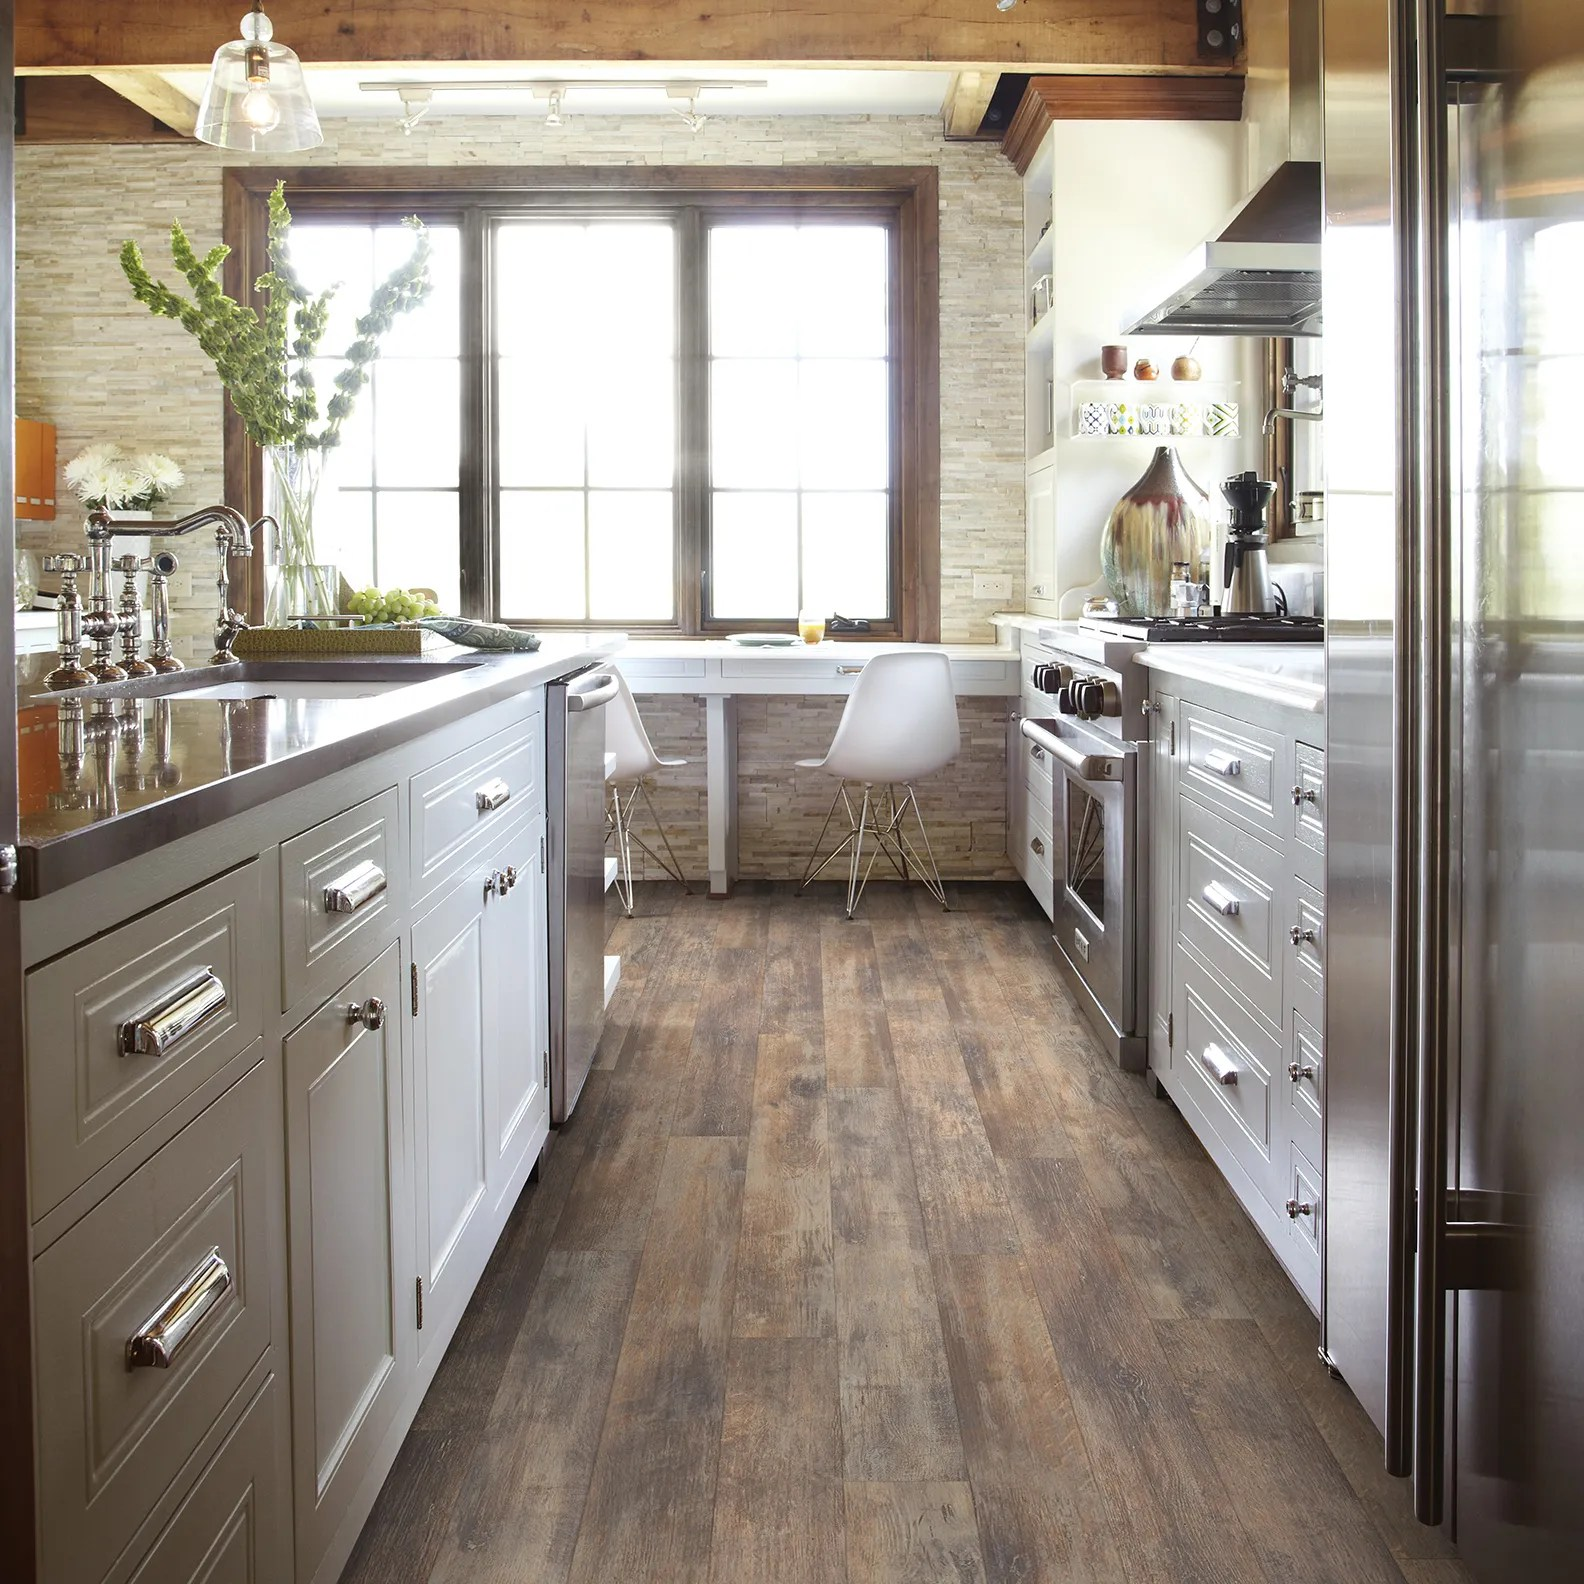 How To Clean Laminate Floors 11 Do S And Don Ts Architectural Digest